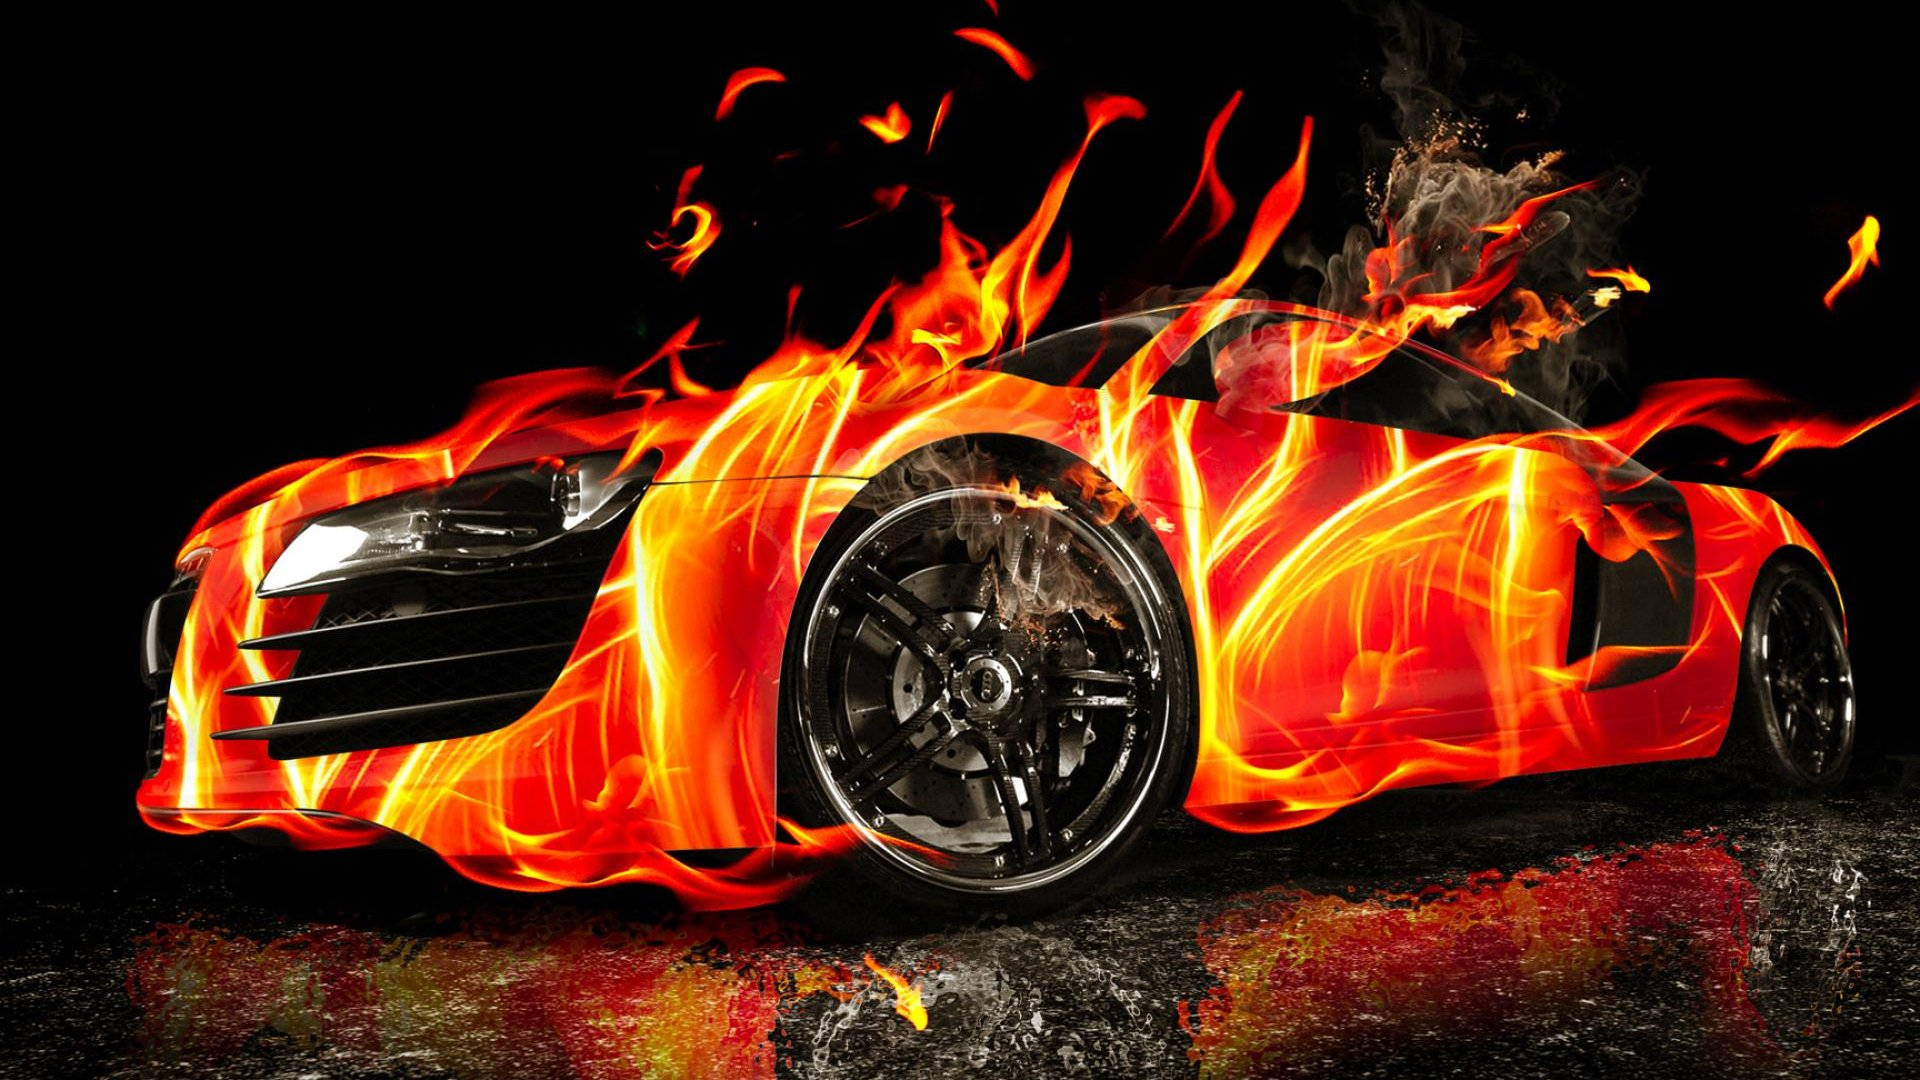 Car On Fire Hd Wallpaper Latest Wallpapers